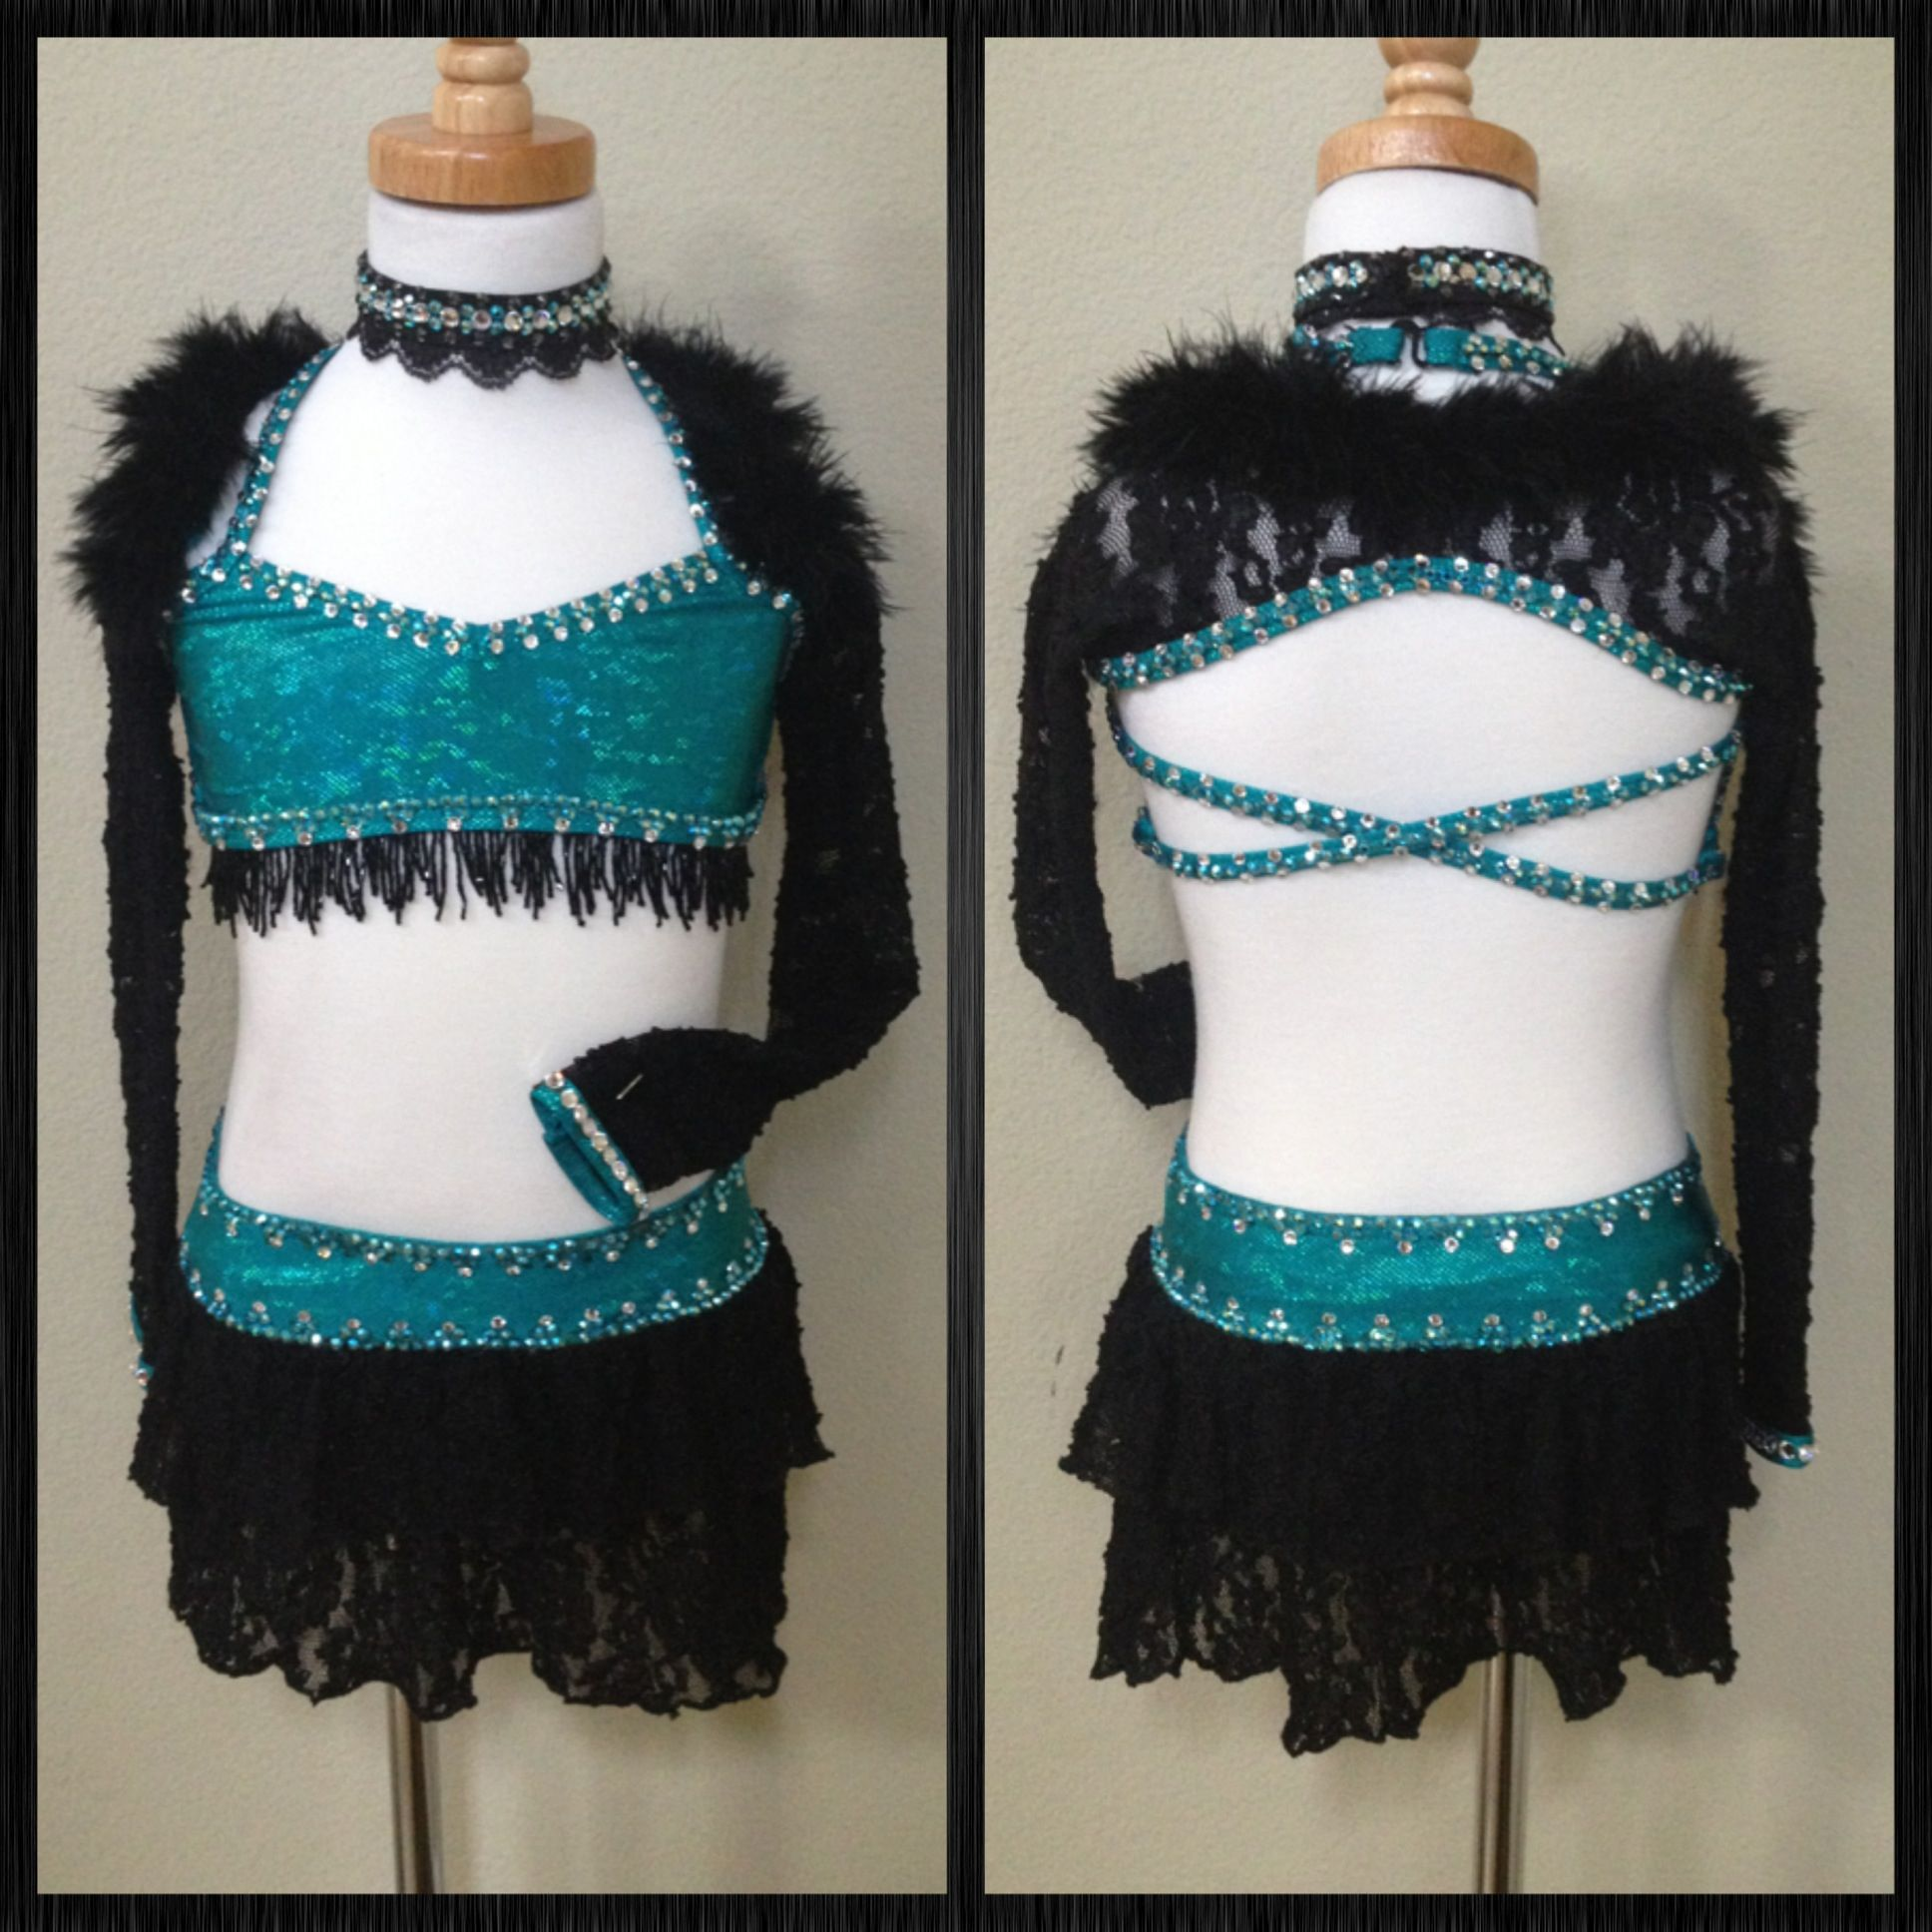 uptown girl competition dance costume resale. https://www.facebook